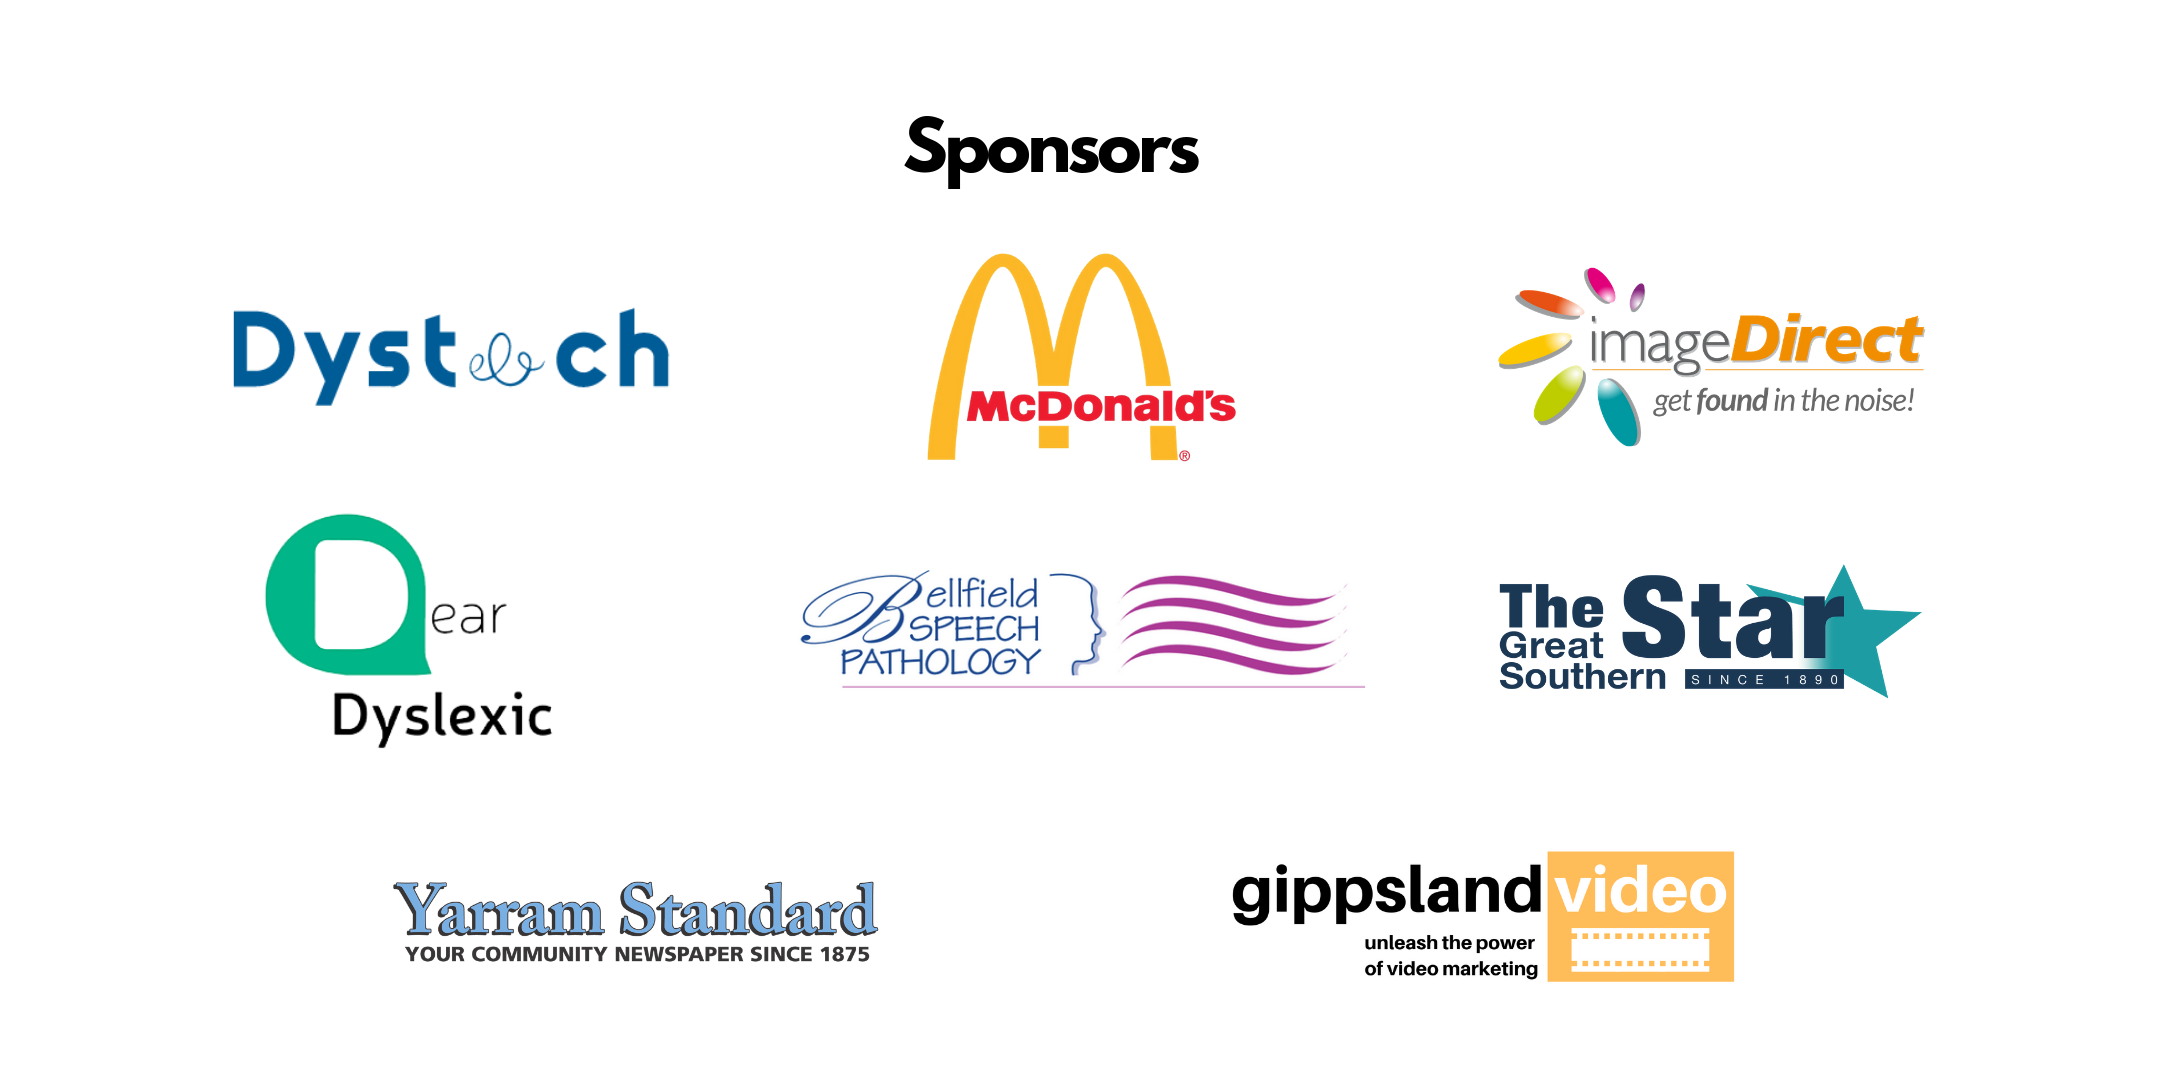 Sponsors of the conference